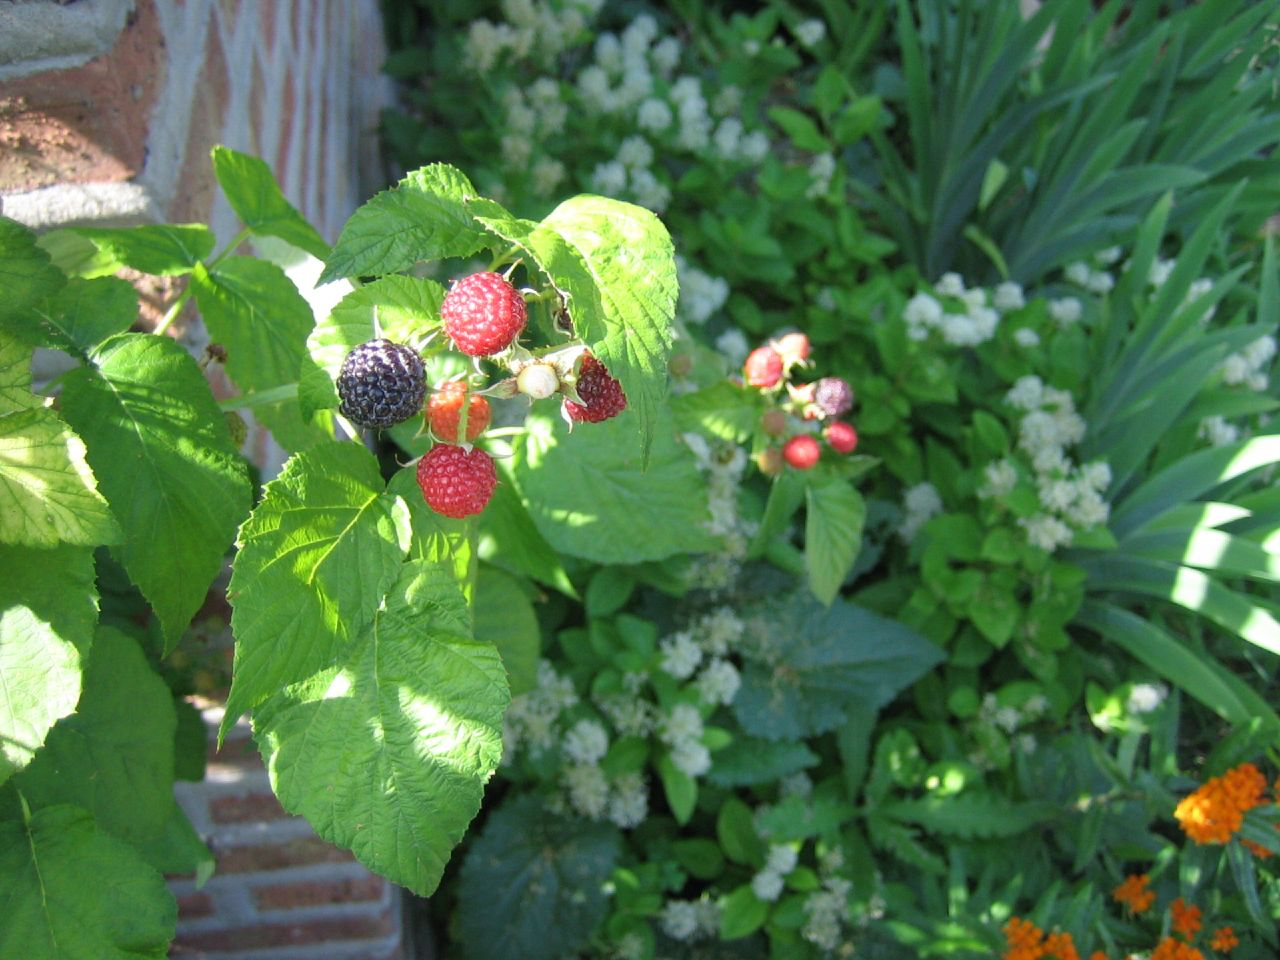 Arguably the most delicious fruit on the planet, black raspberries are not to be found at your local grocery. You can cultivate them yourself, or find them growing wild.